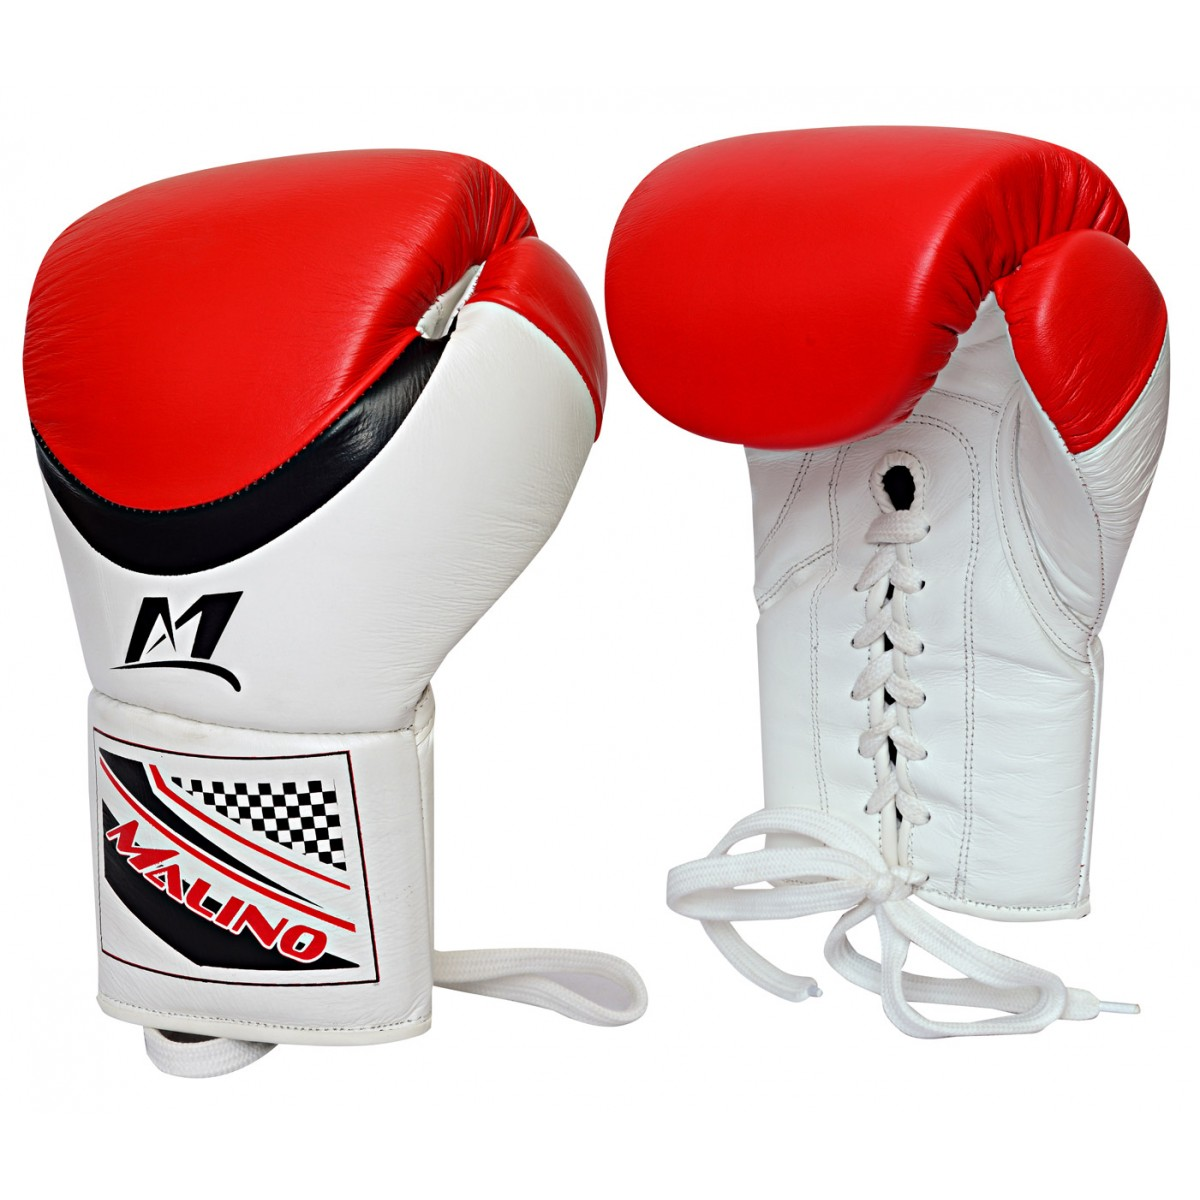 Malino Leather Laces Boxing Gloves for Men